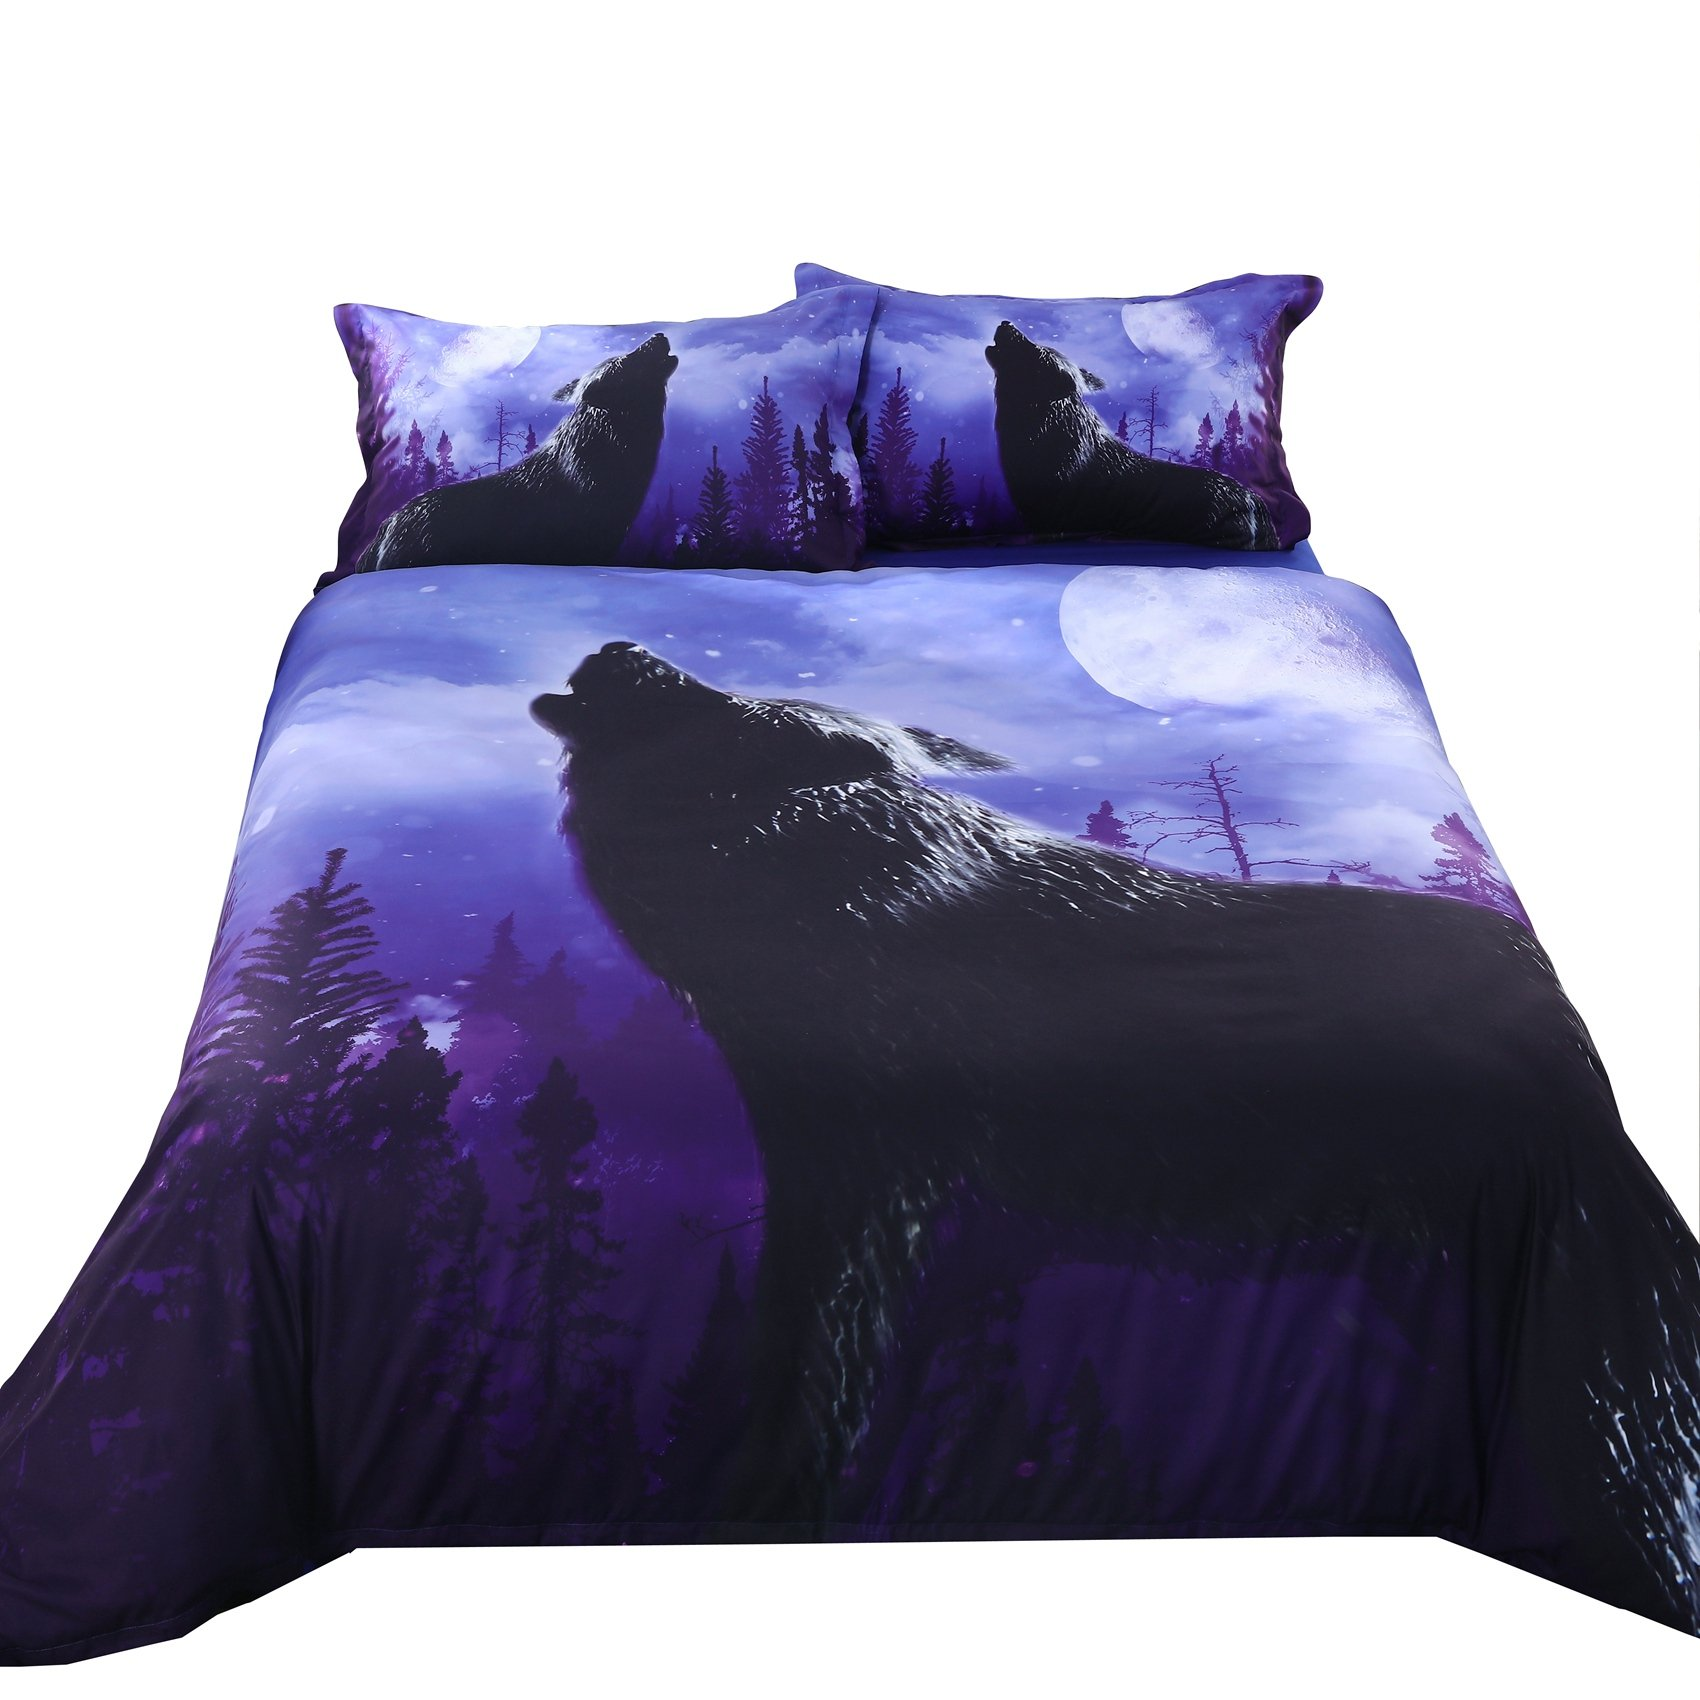 The Howling Wolf in the Moonlight Printed Cotton Blue 4 Peice Duvet Cover Set 3D Bedding 2 Pillowcase 1 Flat Sheet 1 Duvet Cover (King, Wolf)